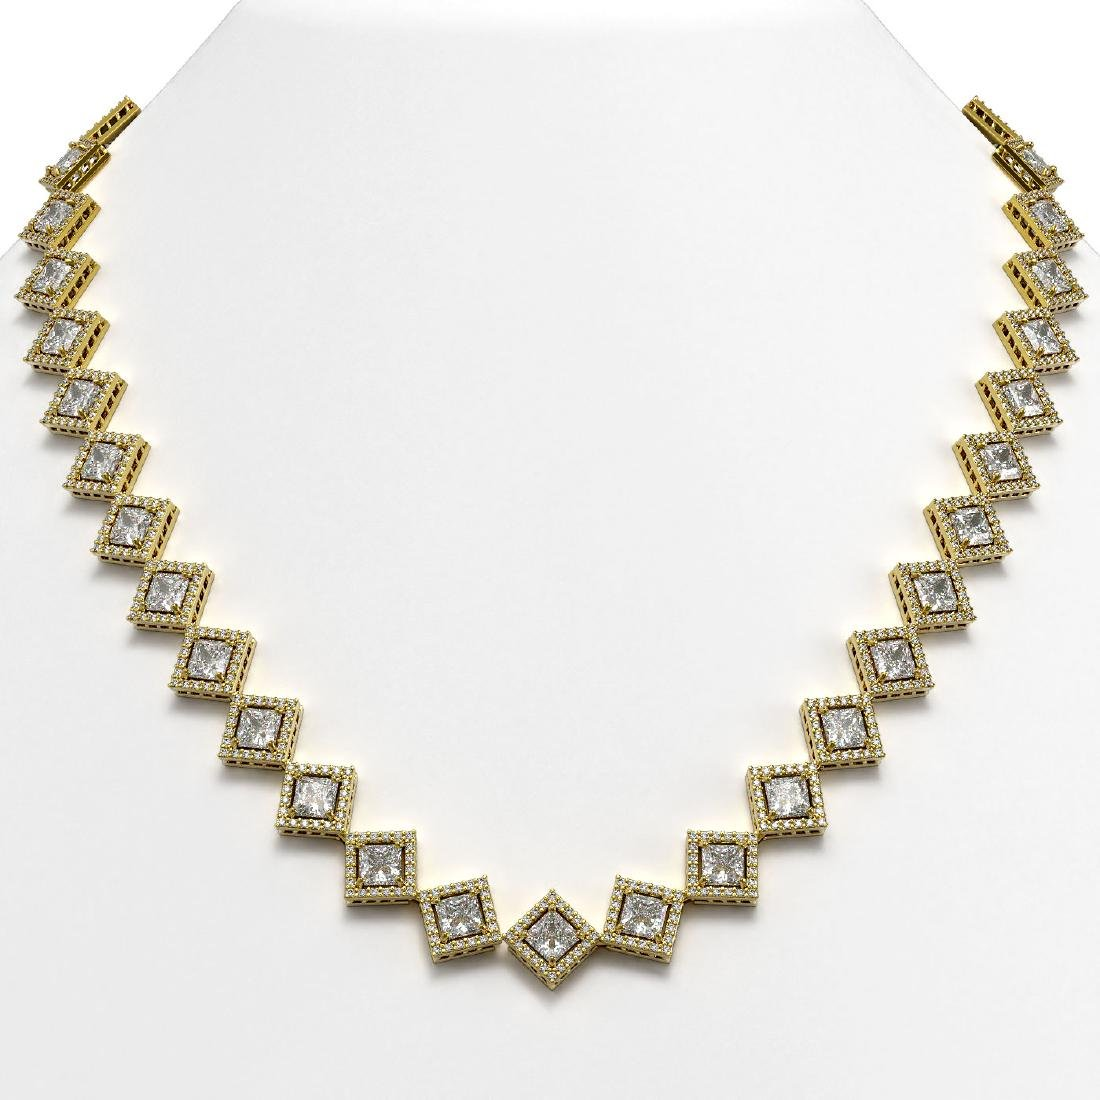 31.92 CTW Princess Cut Diamond Designer Necklace 18K